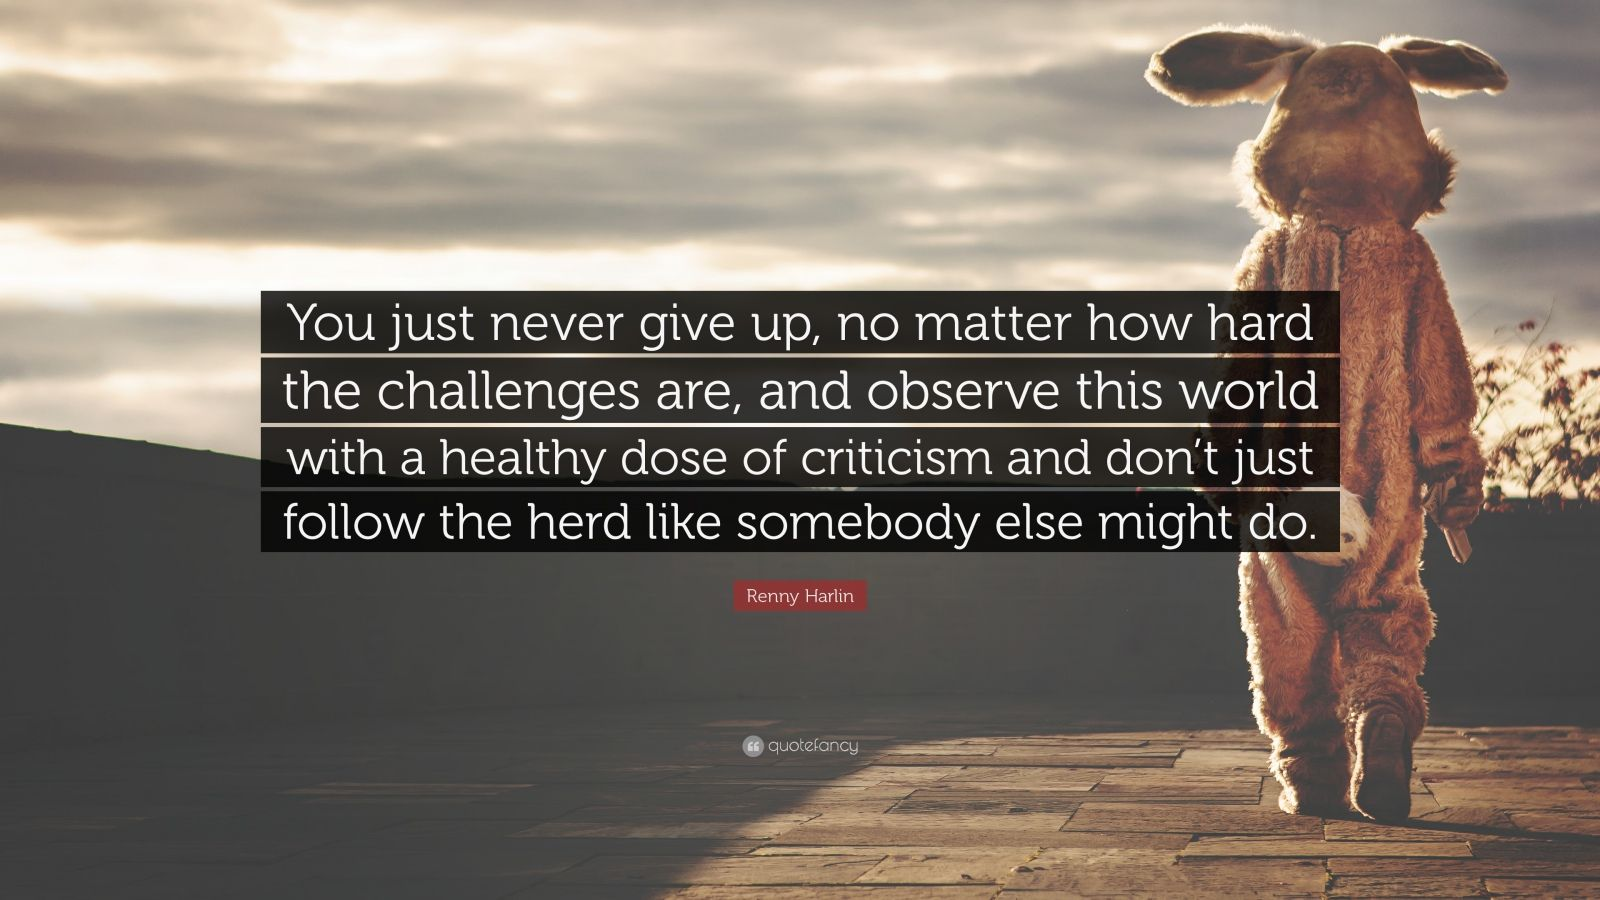 """Renny Harlin Quote: """"You just never give up, no matter how hard the challenges are, and observe this world with a healthy dose of criticism and don't just follow the herd like somebody else might do."""""""